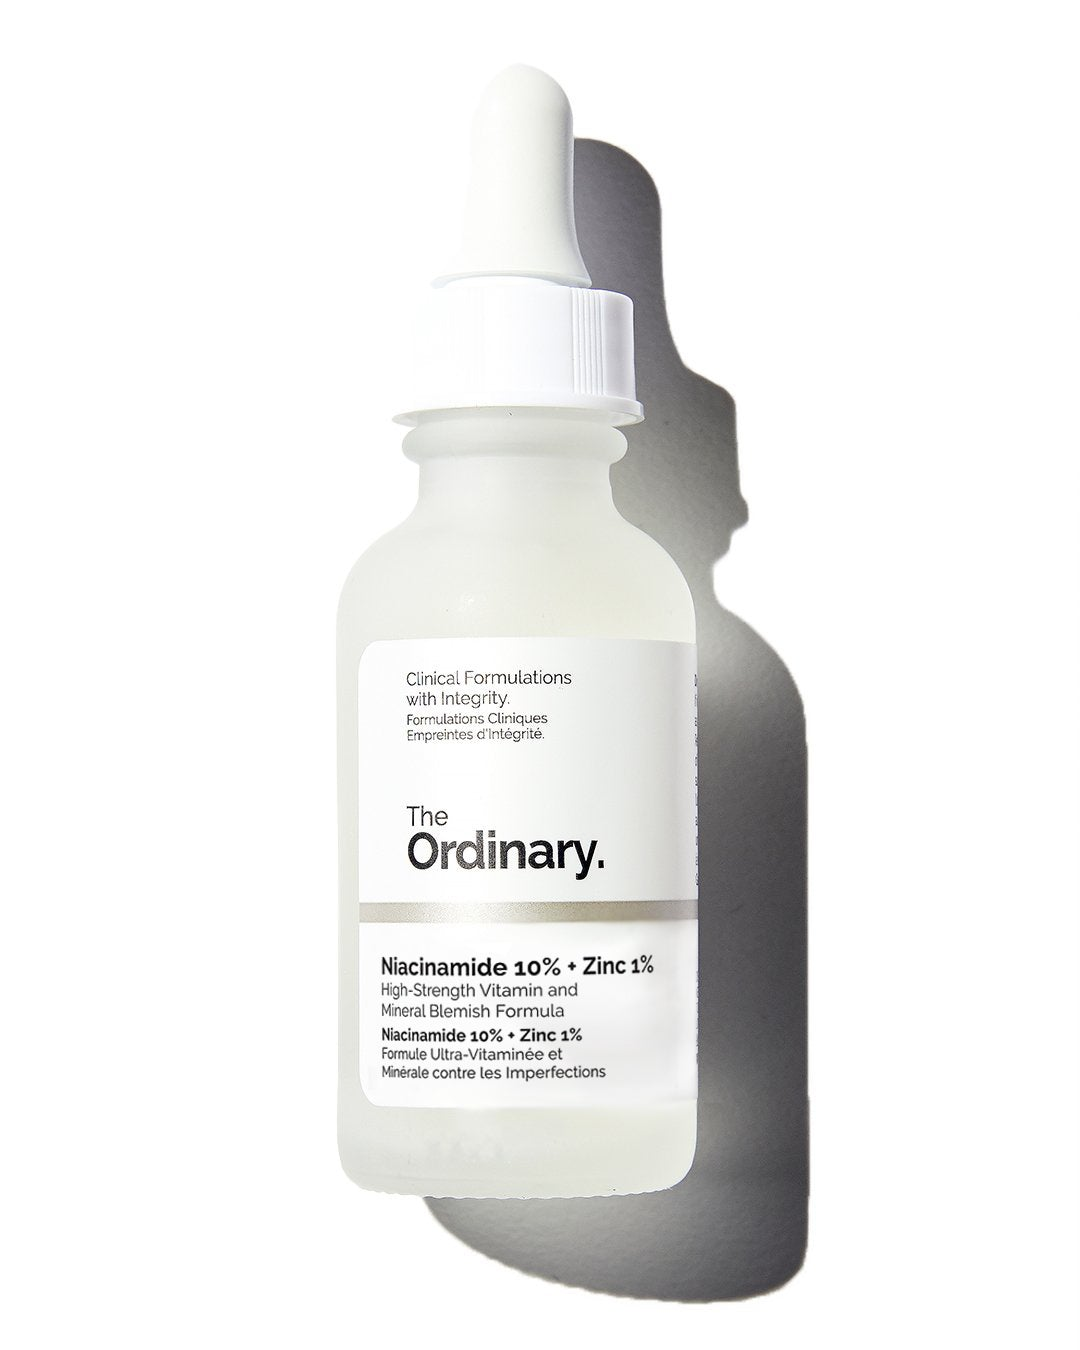 THE ORDINARY | Niacinamide 10% + Zinc 1% | Acne prevention